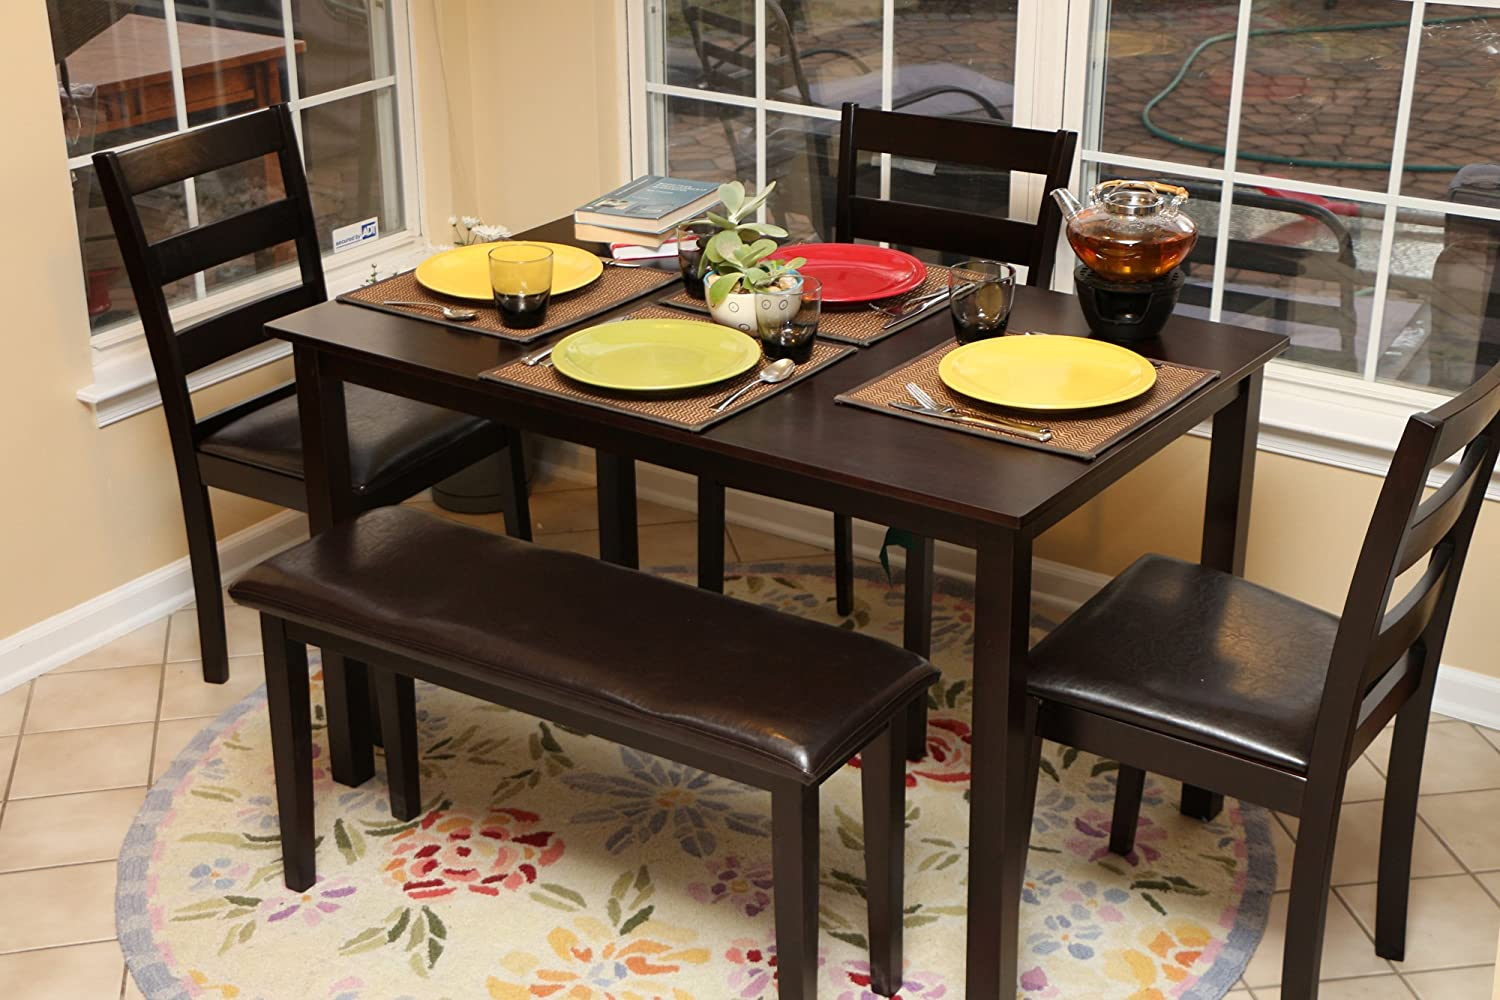 Amazon.com - LIFE Home Home Life 5pc Dining Dinette Table Chairs u0026 Bench Set Espresso Finish 150236 - Table u0026 Chair Sets : bench table dining set - pezcame.com